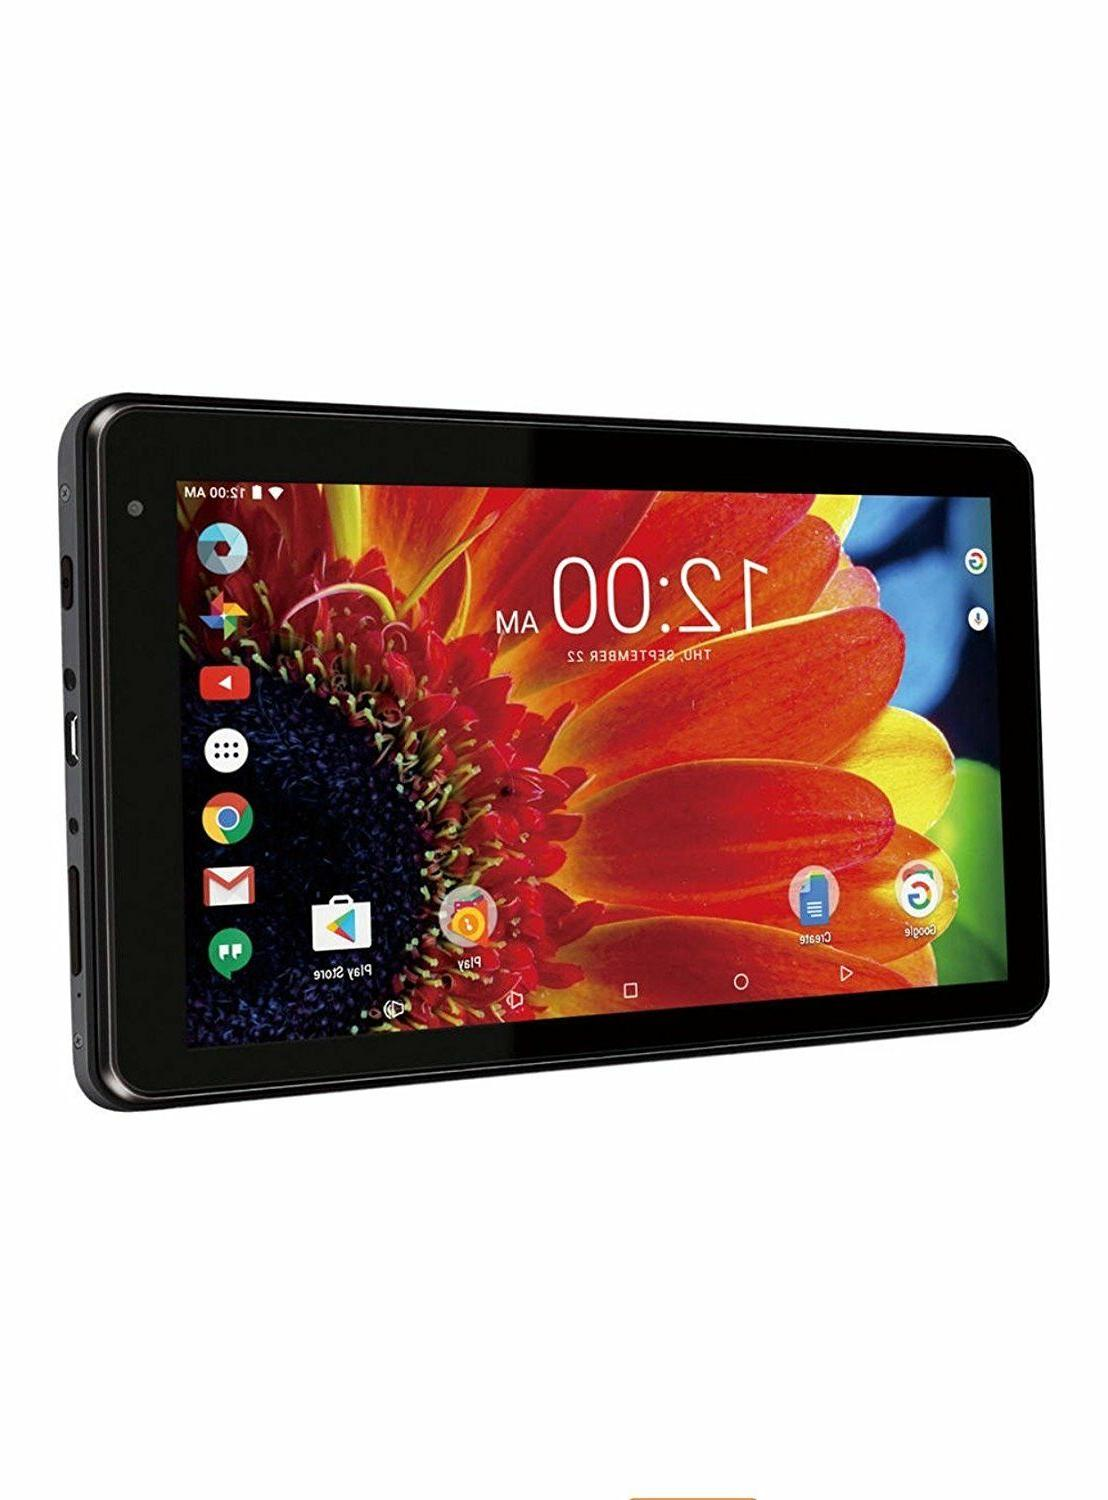 New RCA Core Voyager Wifi 1GB 1.2Ghz Android Tablet